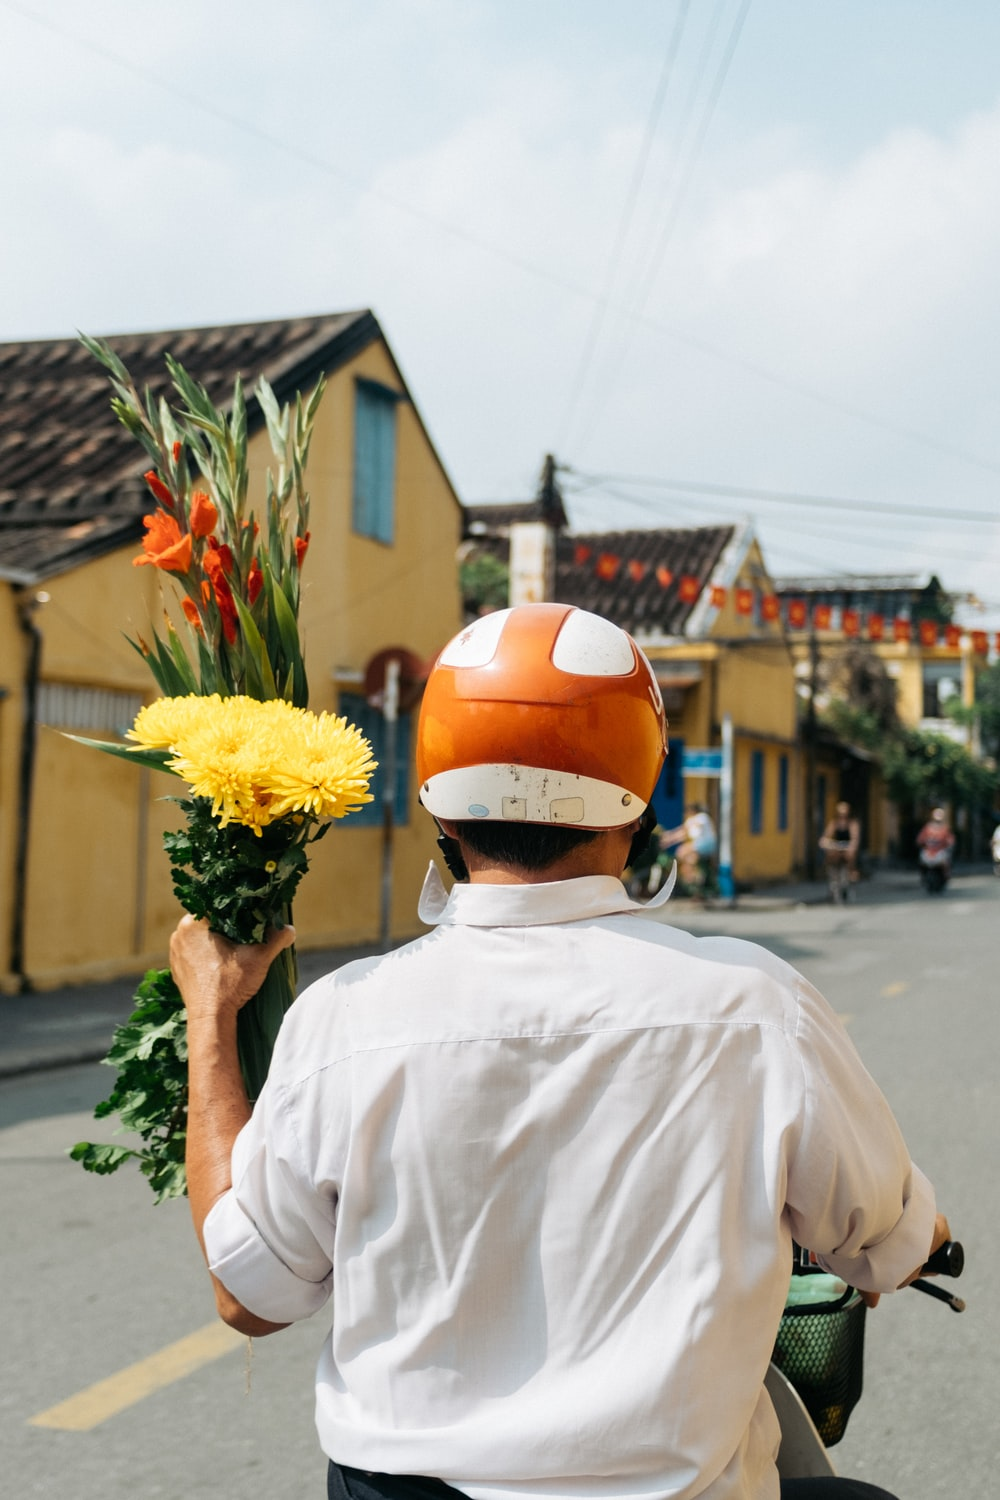 person riding motorcycle while holding yellow petaled flowers during daytime